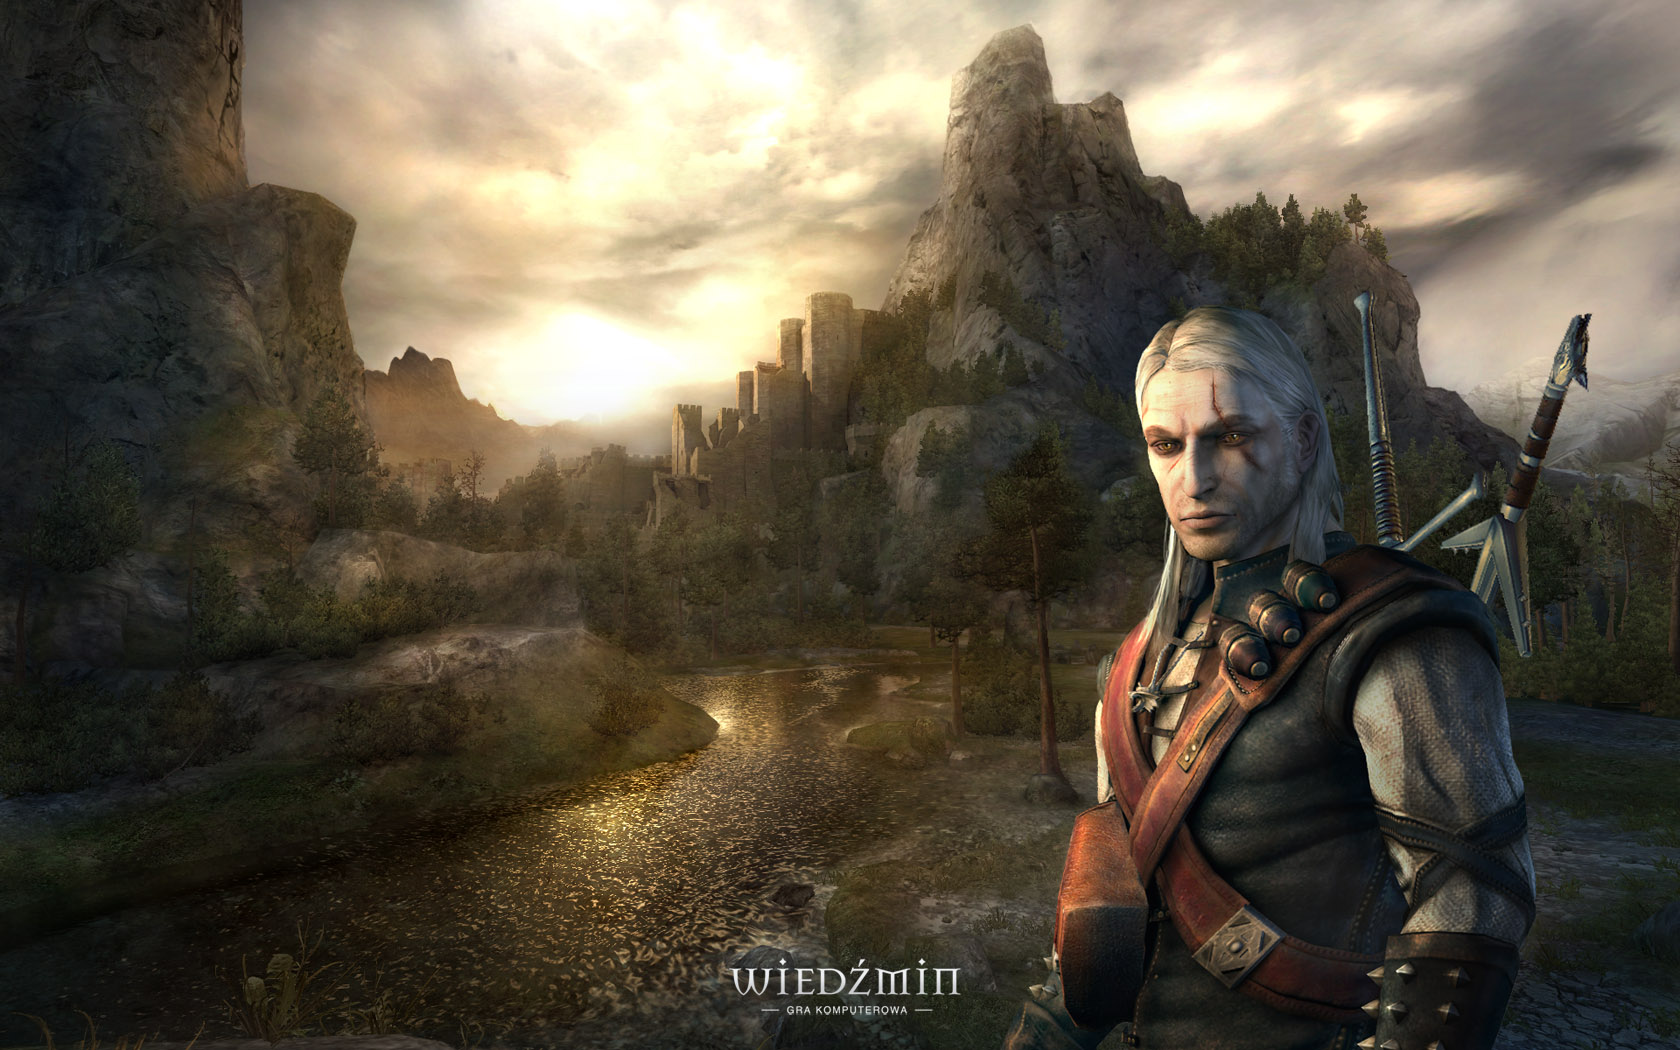 Download High quality The Witcher The Witcher wallpaper / 1680x1050